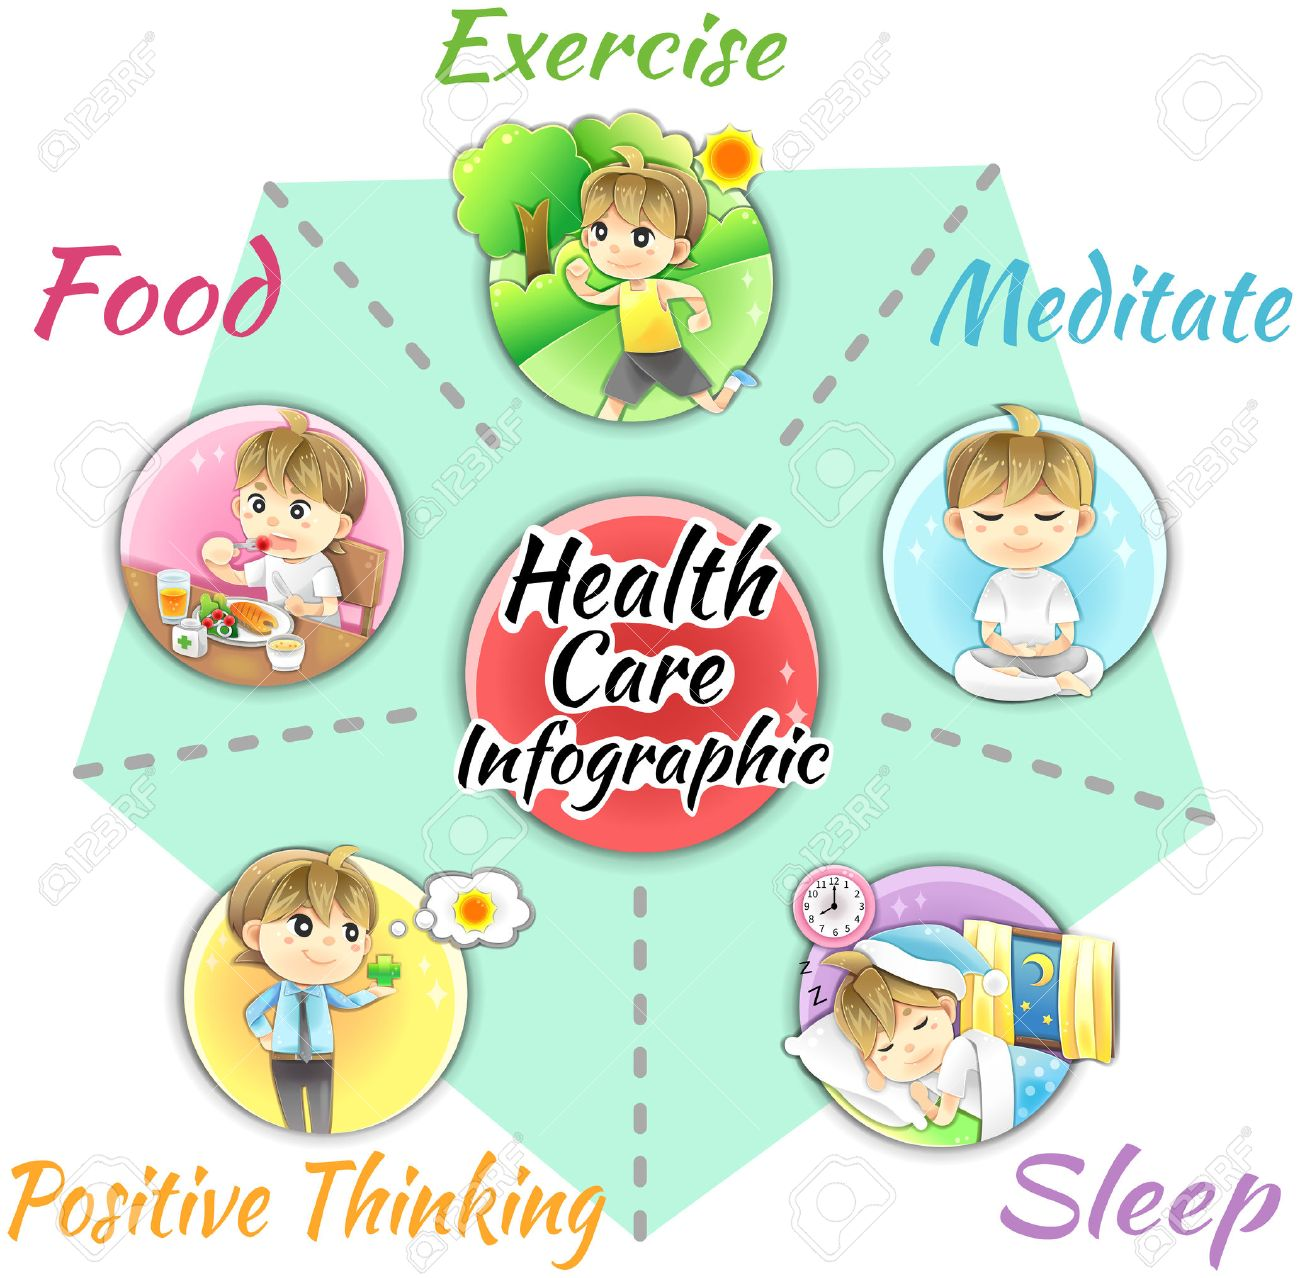 Food and good health - How To Obtain Good Health And Welfare Infographic Template Design Layout By Healthy Food And Supplementary